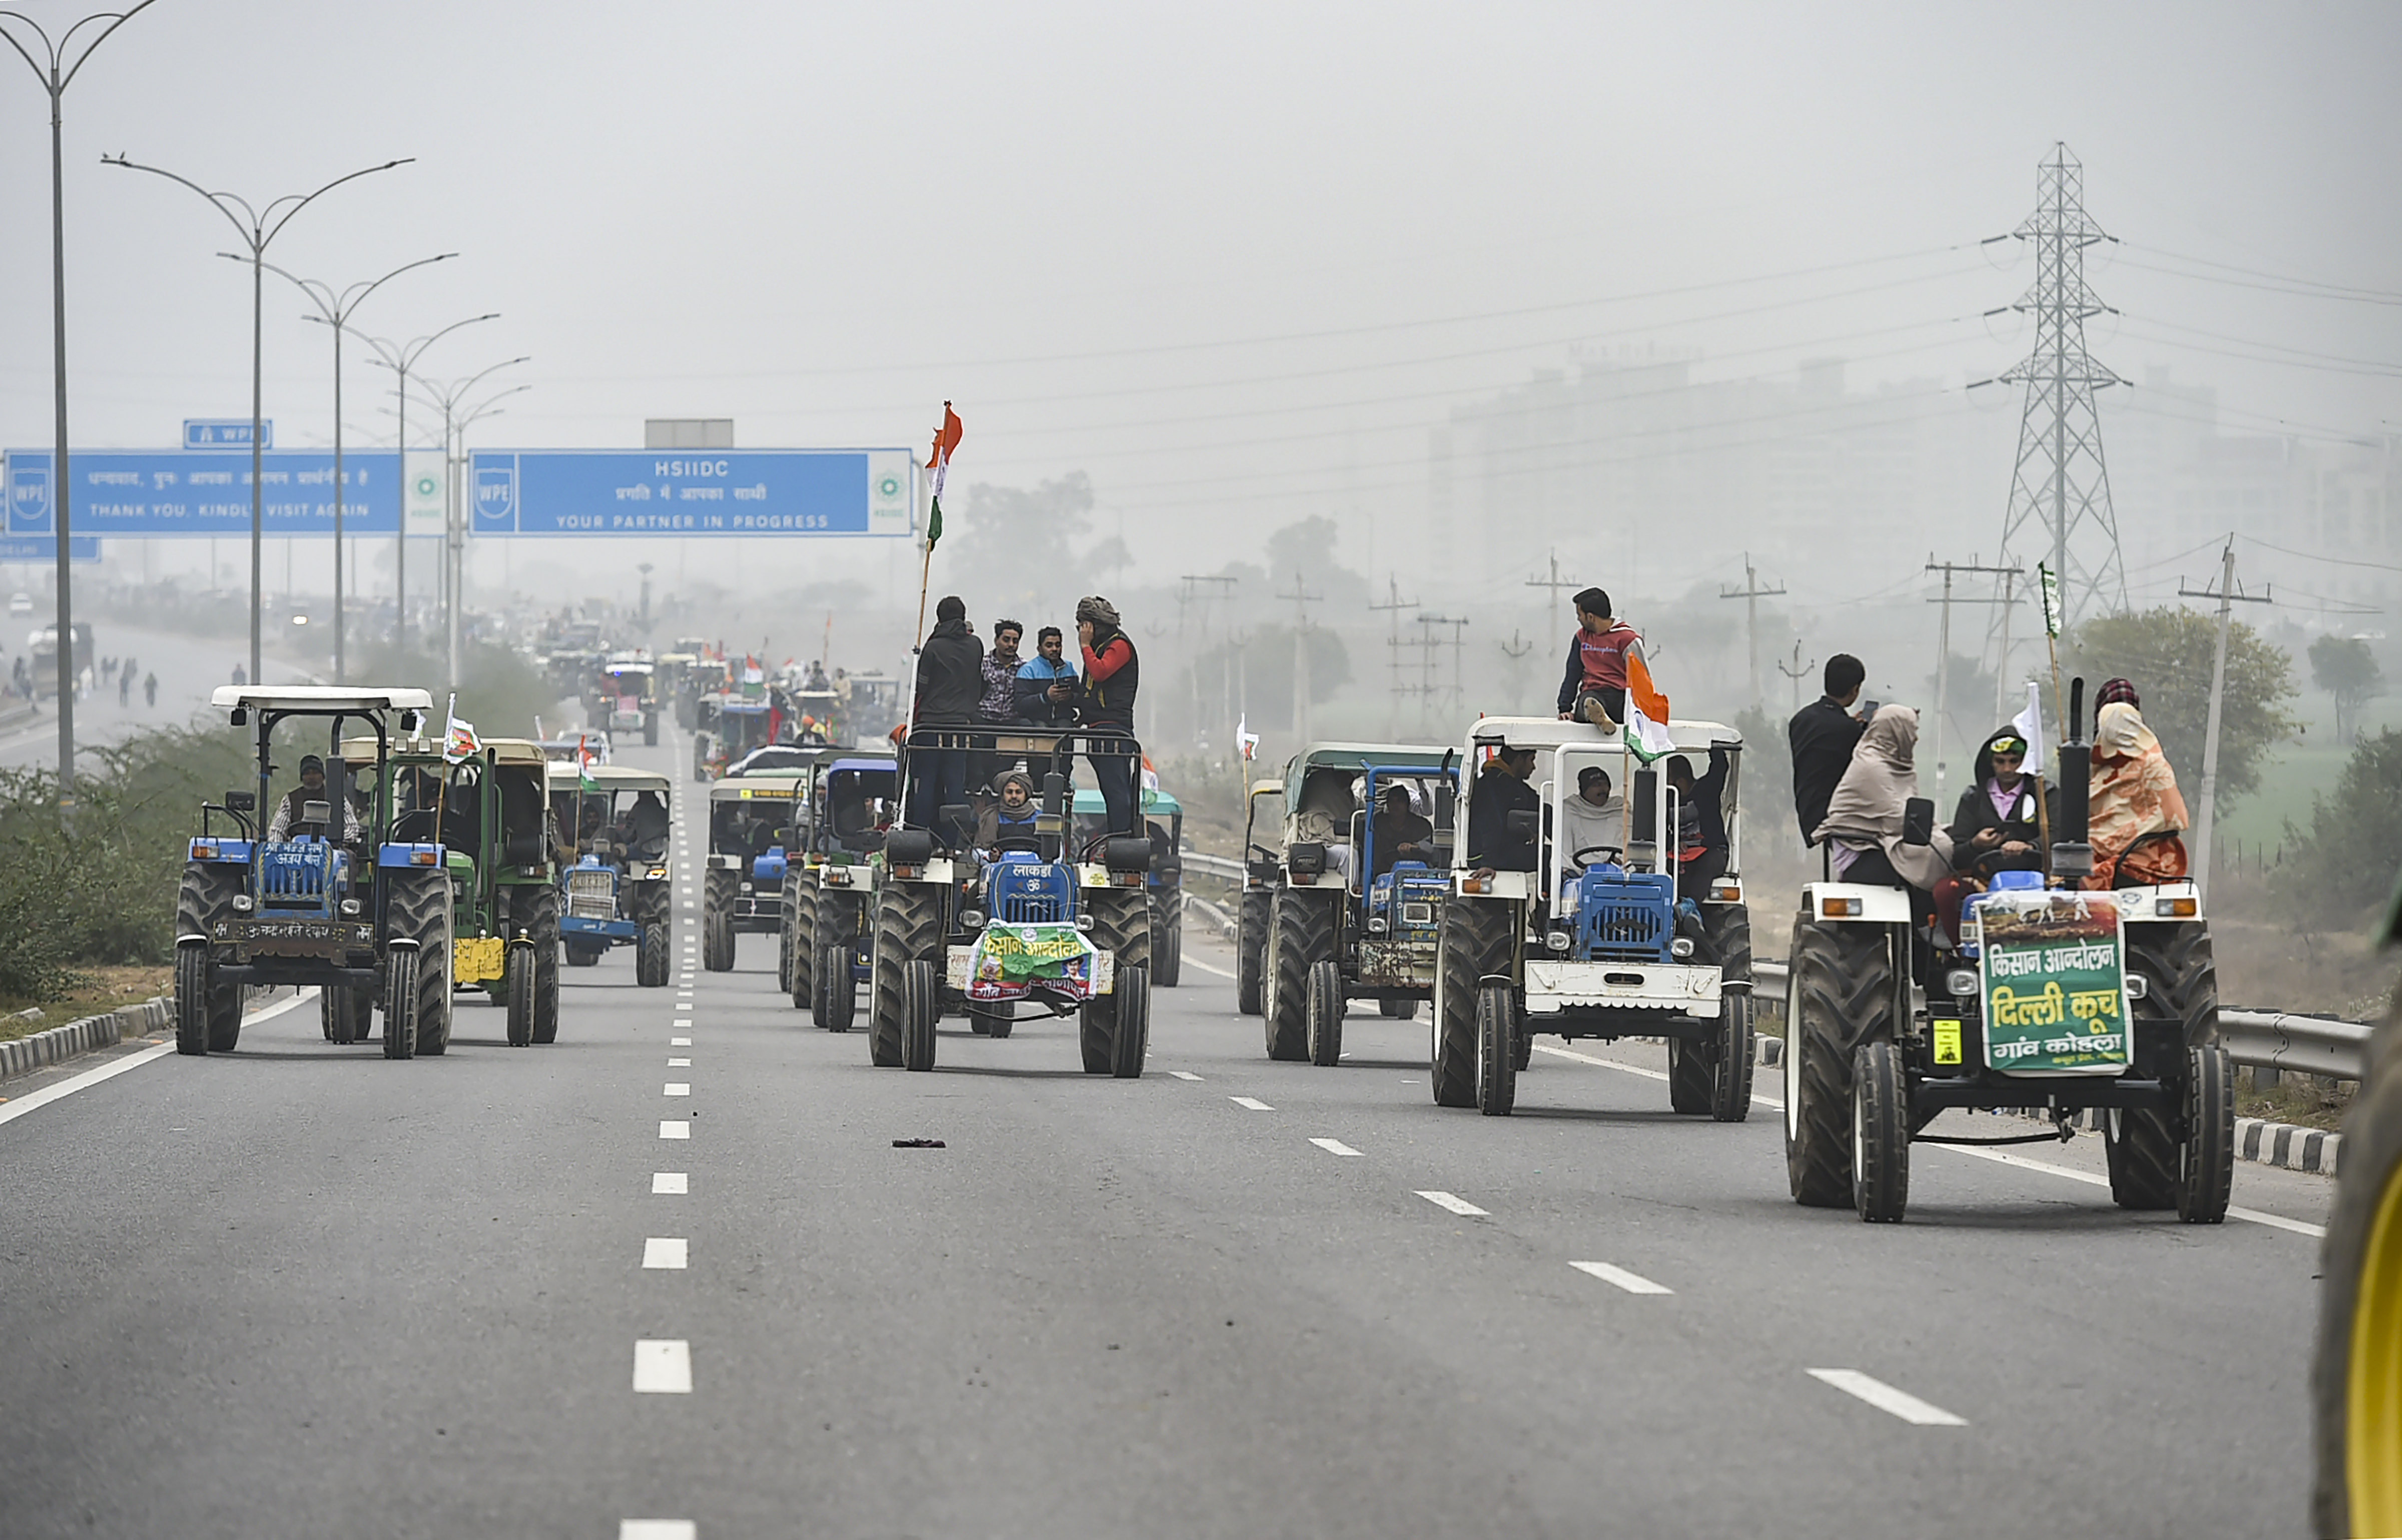 New Delhi: Farmers on their way to Tikri border during a tractor rally as part of their ongoing protest against the new farm laws, at Eastern Peripheral Expressway in New Delhi, Thursday, Jan. 07, 2021. (PTI Photo/Arun Sharma)(PTI01_07_2021_000054B)